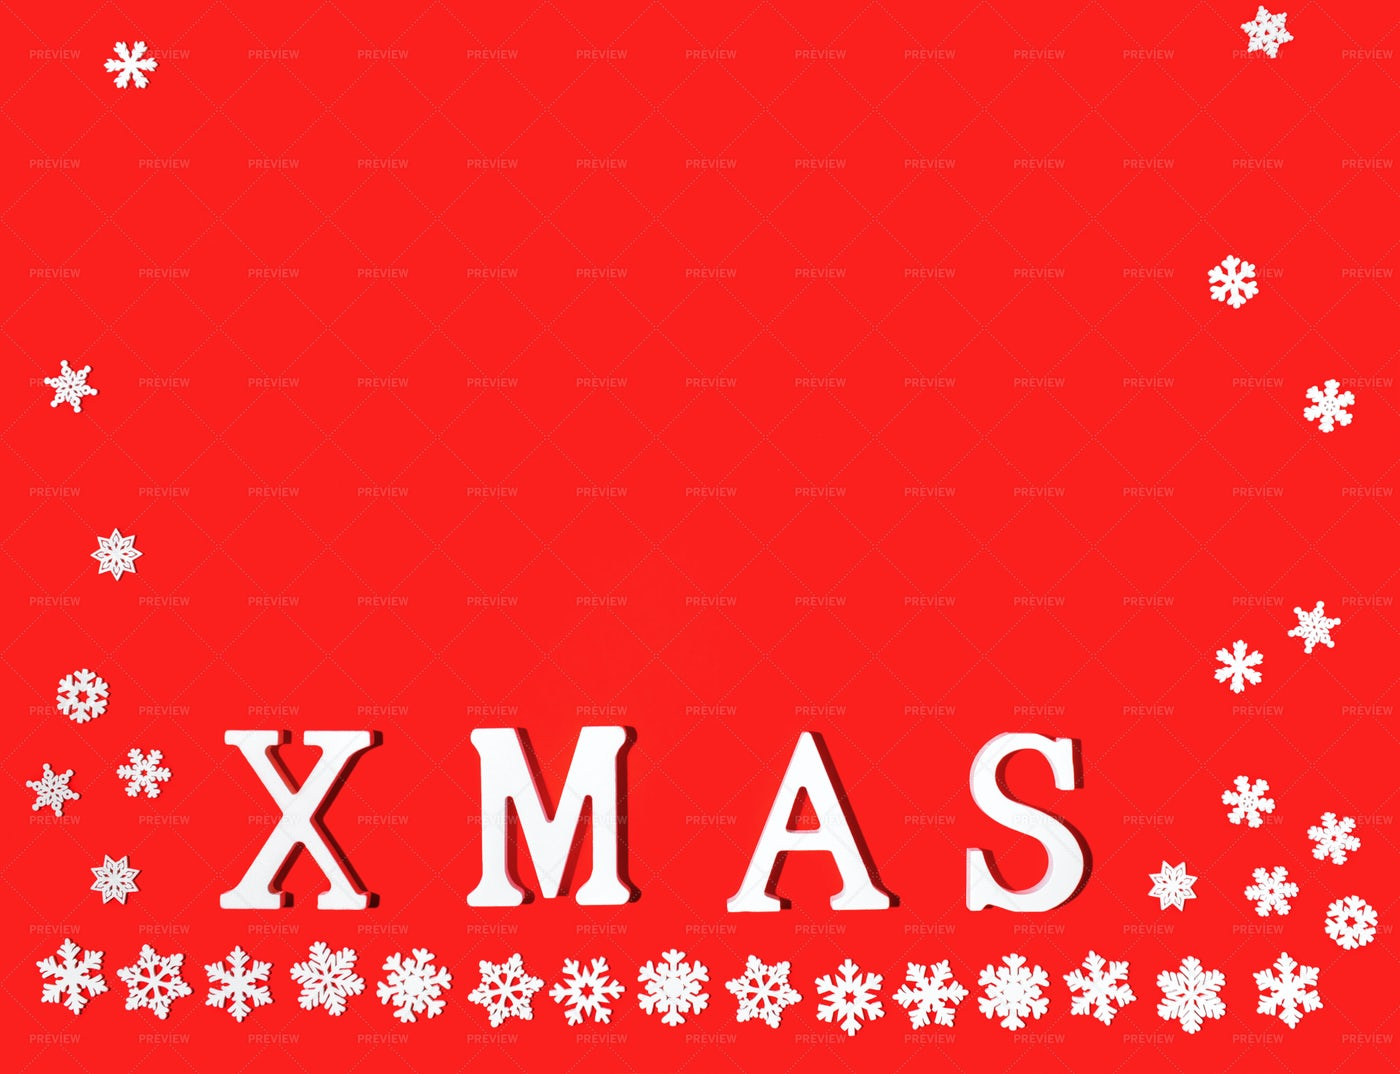 Snowflakes And Word XMAS On Red.: Stock Photos